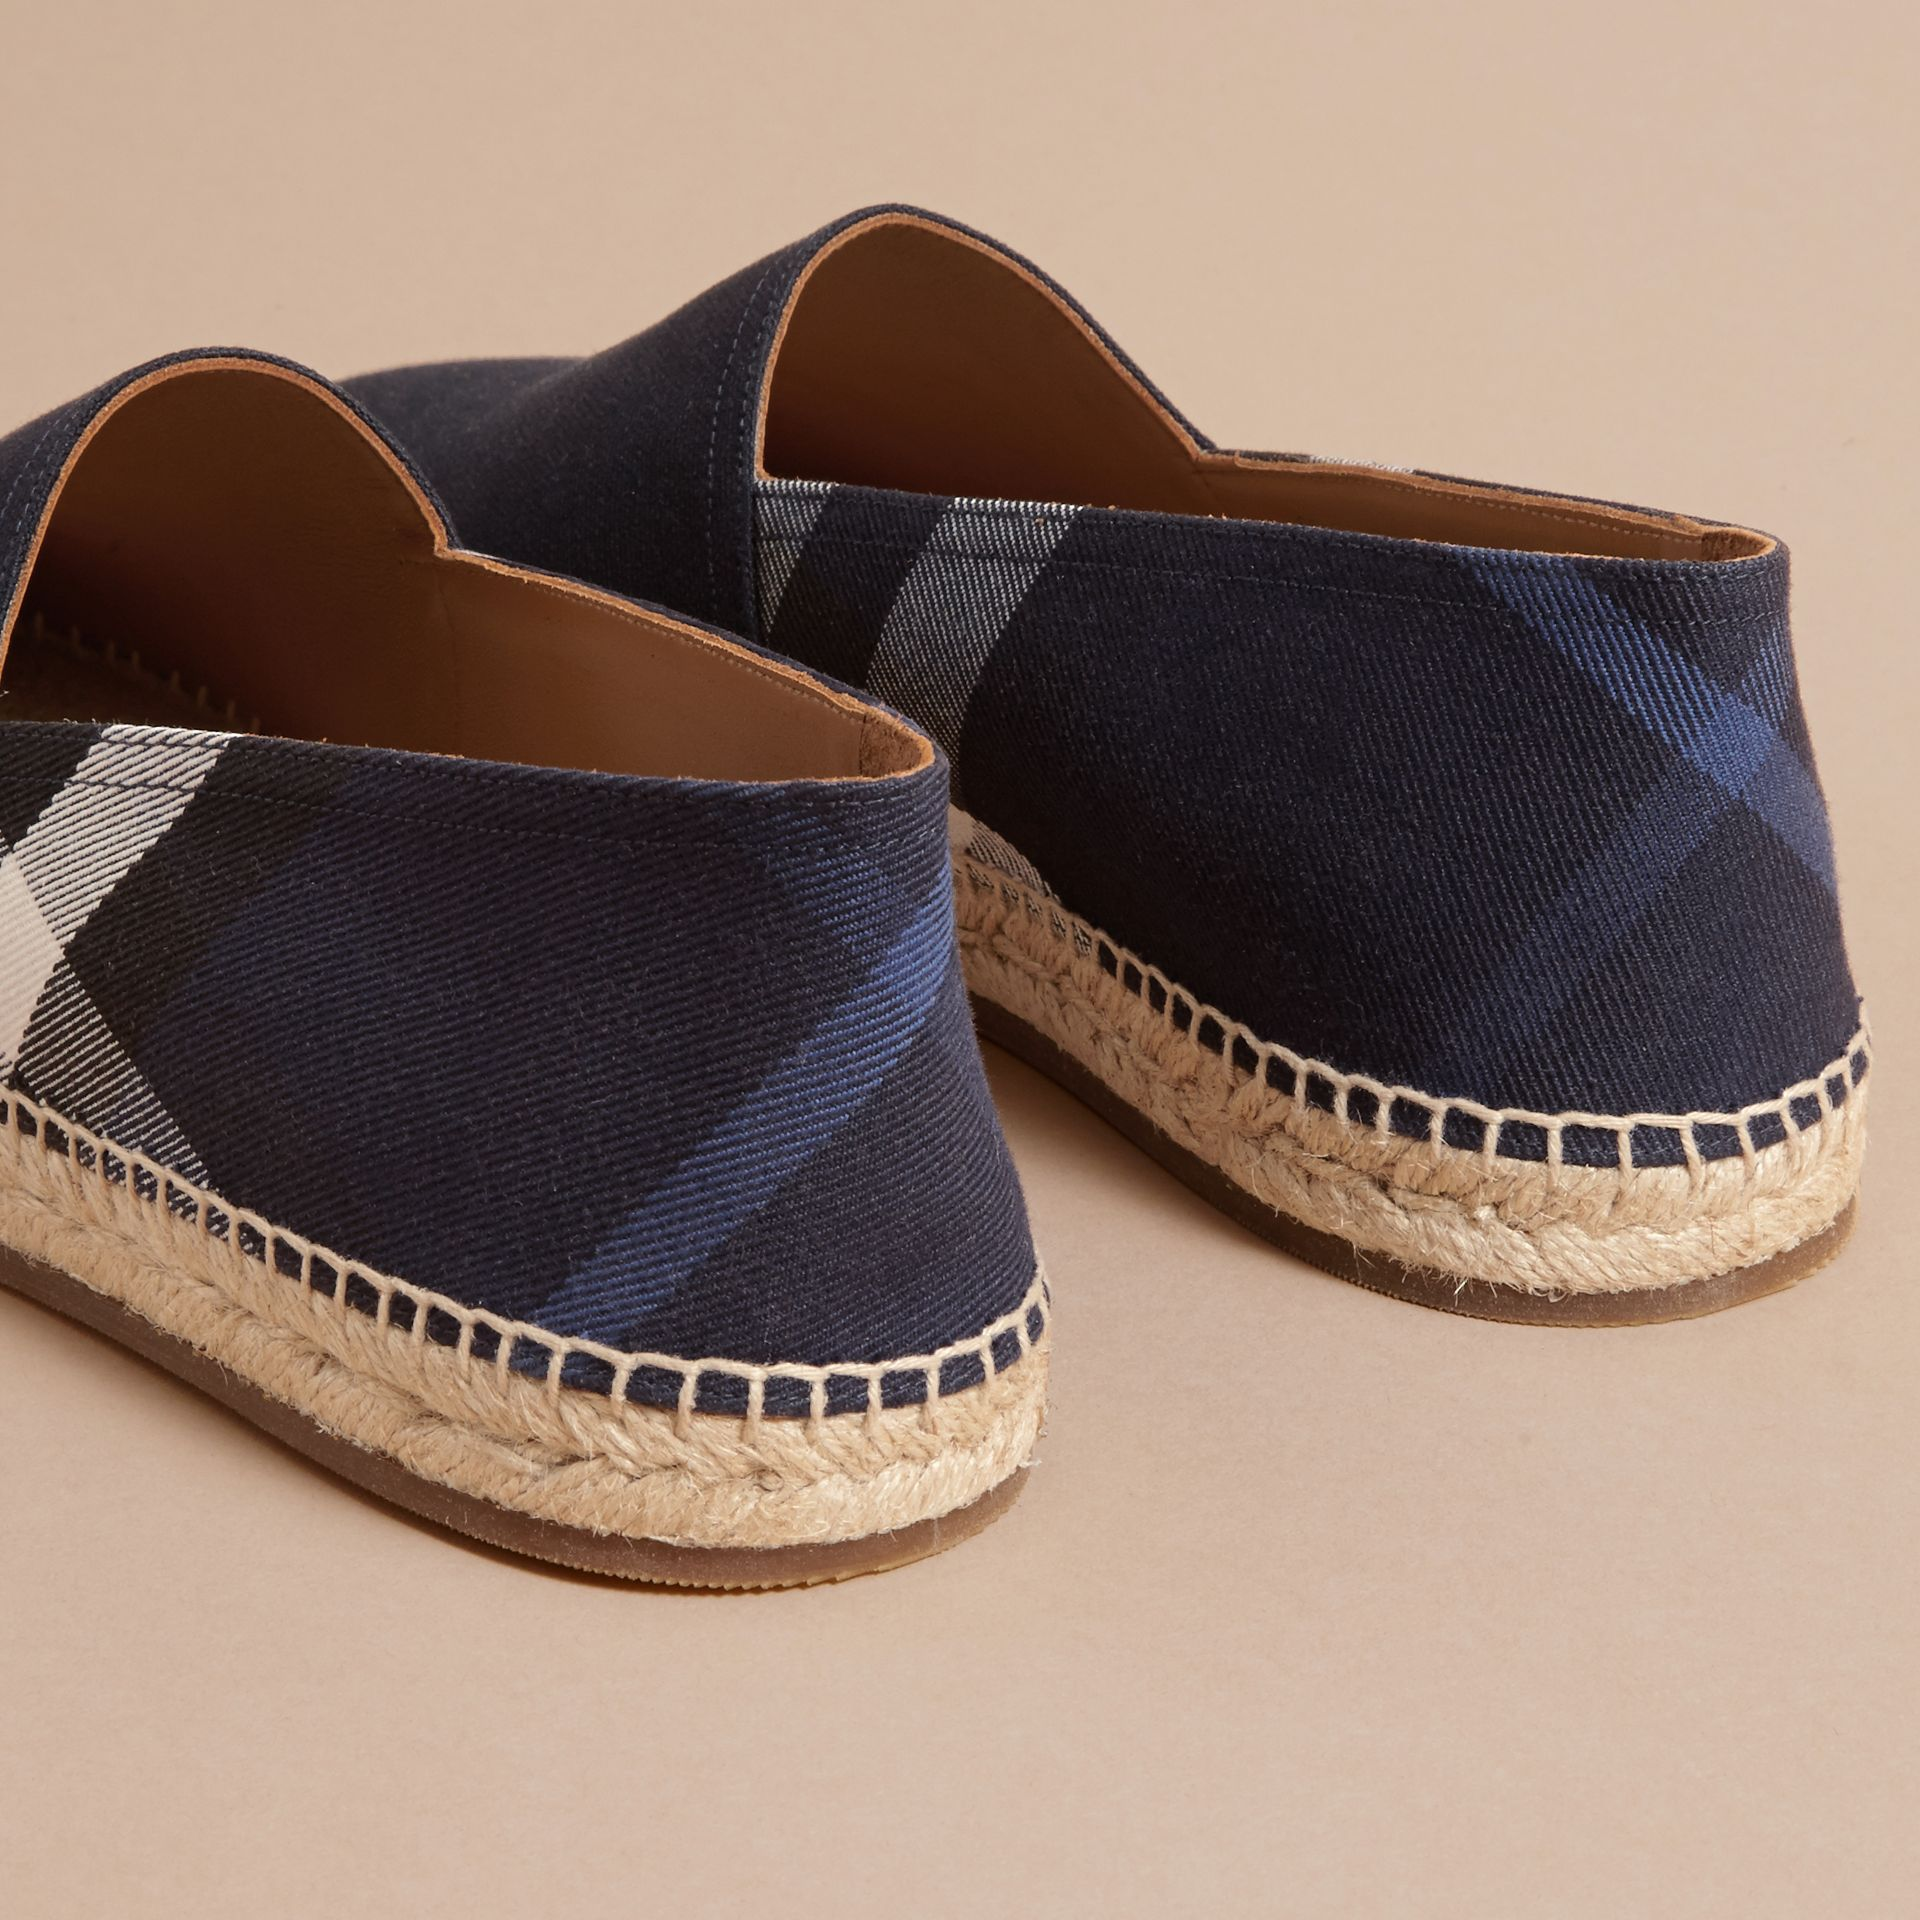 Overdyed House Check and Cotton Canvas Espadrilles - Men | Burberry Singapore - gallery image 4